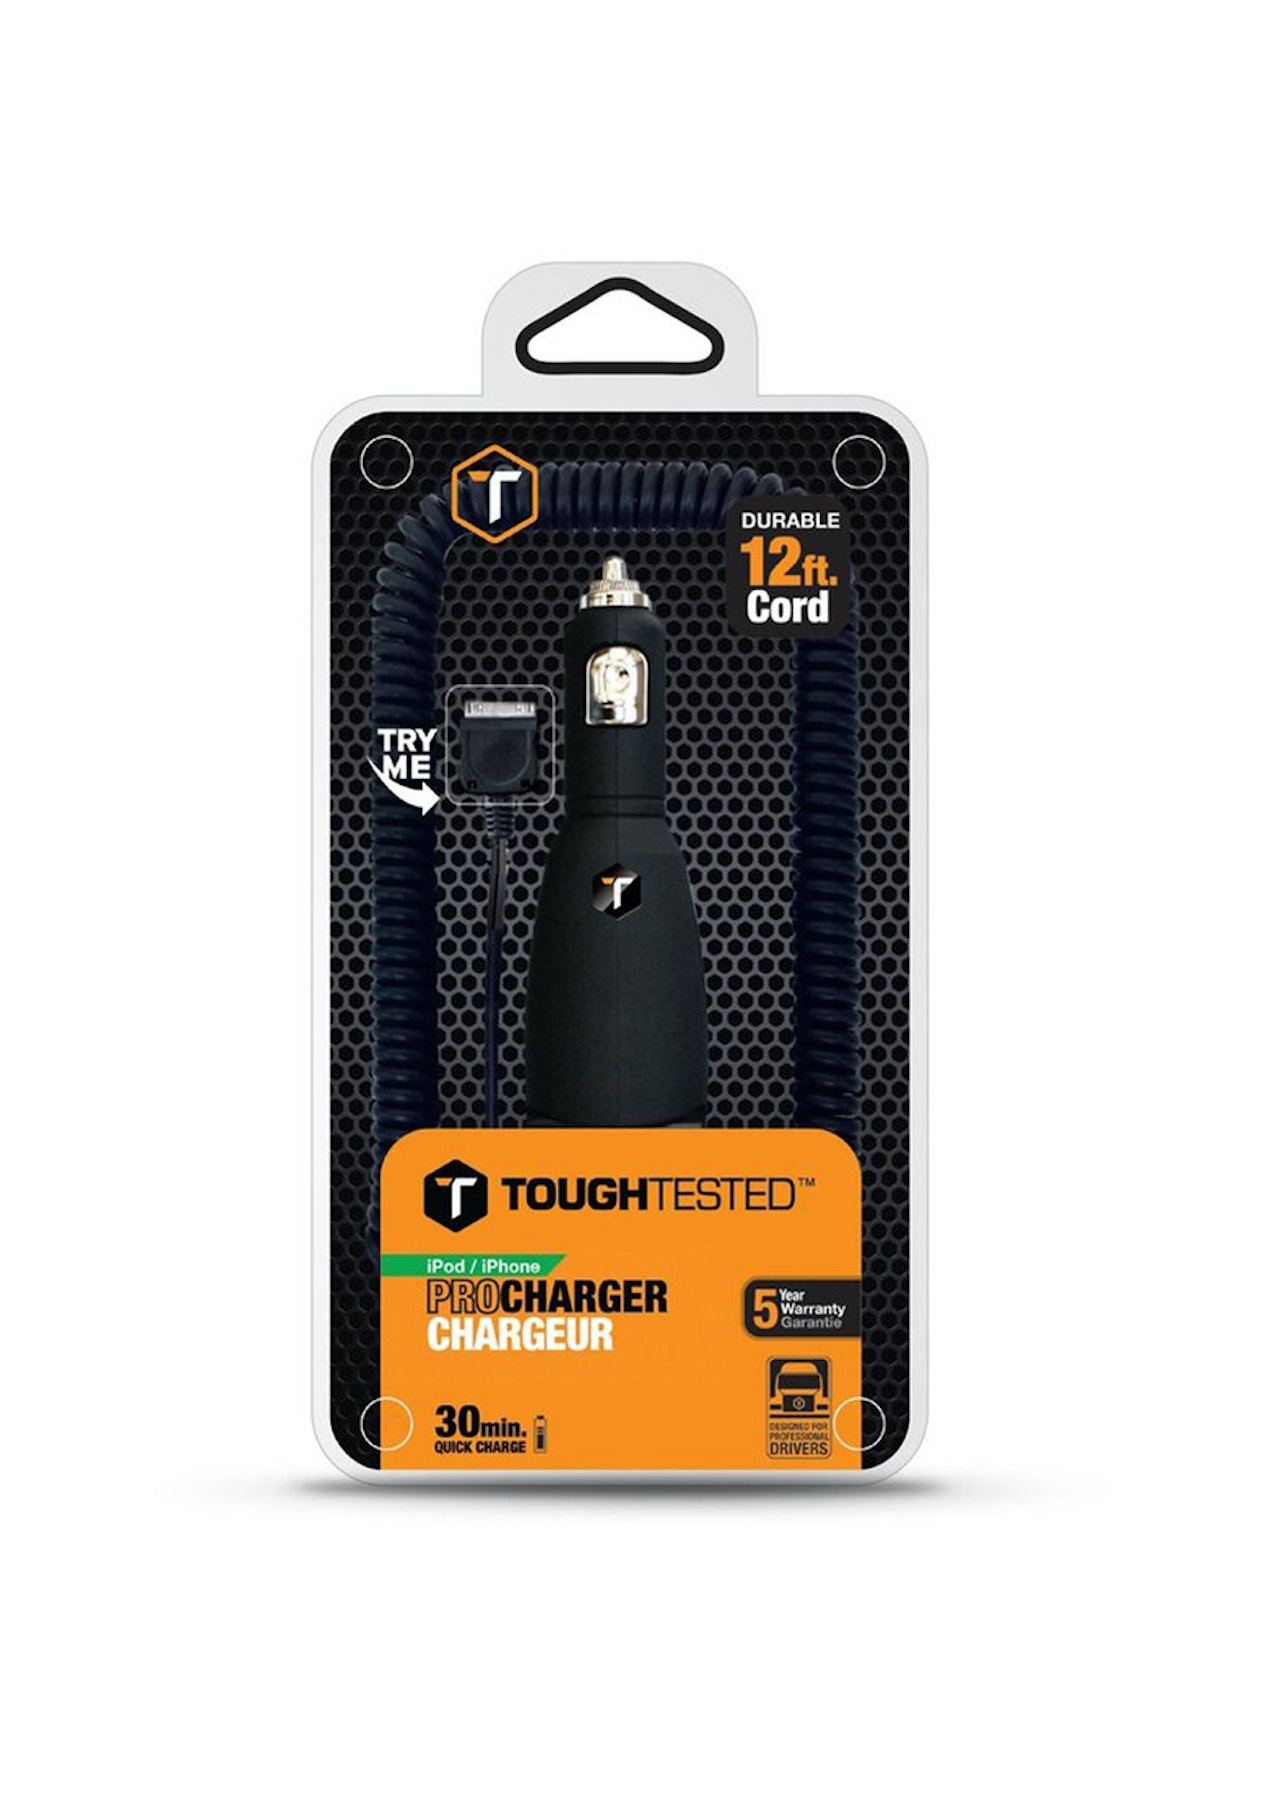 ToughTested 30 Pin Car Charger for Apple iPhone 4S 4 3GS 3G